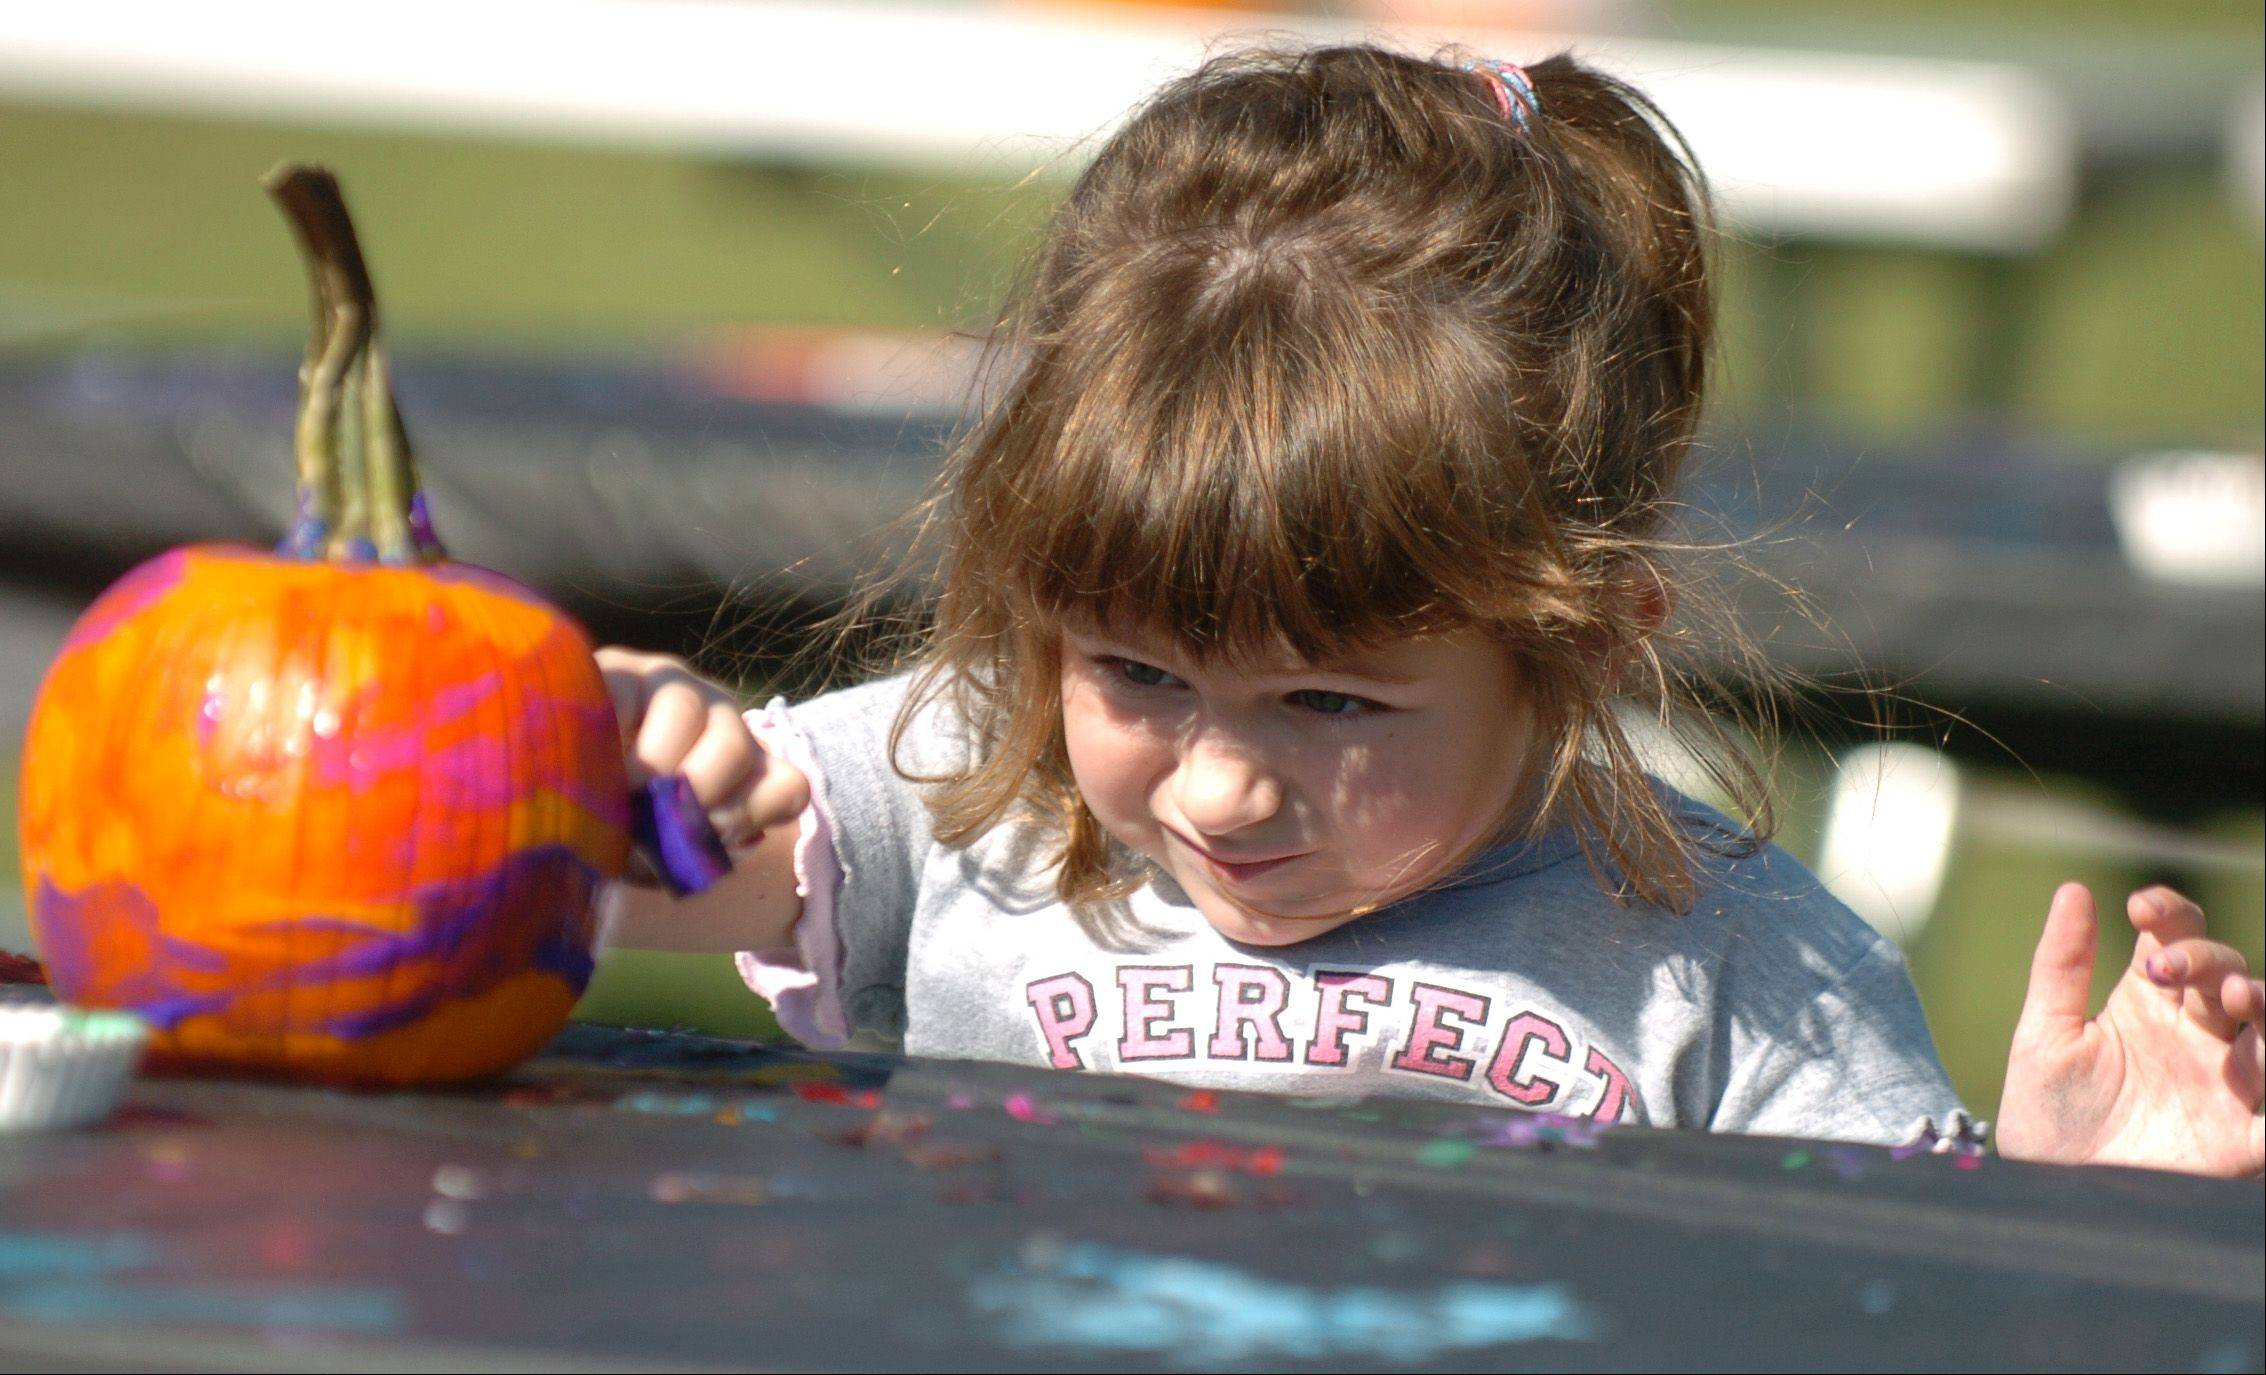 Decorating pumpkins is a favorite activity of visitors to Blackberry Farm in Aurora during Pumpkin Weekends in October.